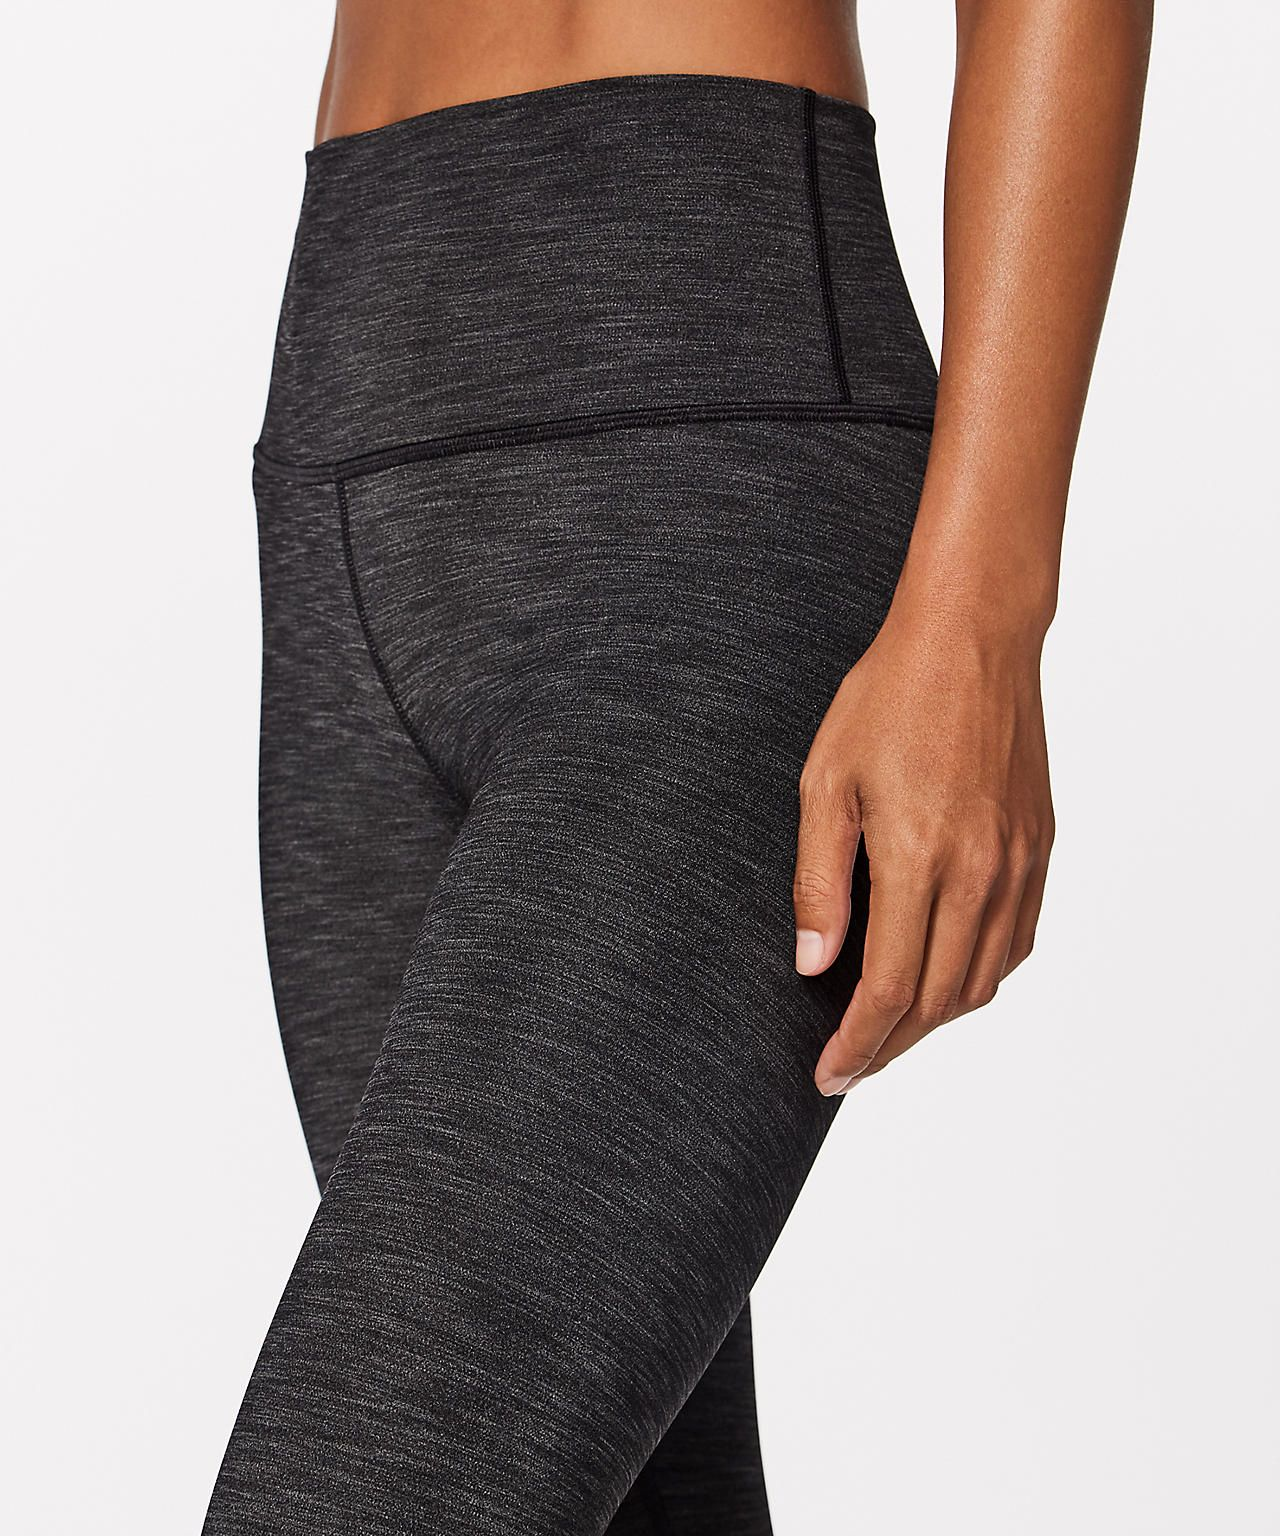 24964bc5747dbf heathered black Lululemon Athletica, Pants For Women, Tights, Leggings,  Stockings